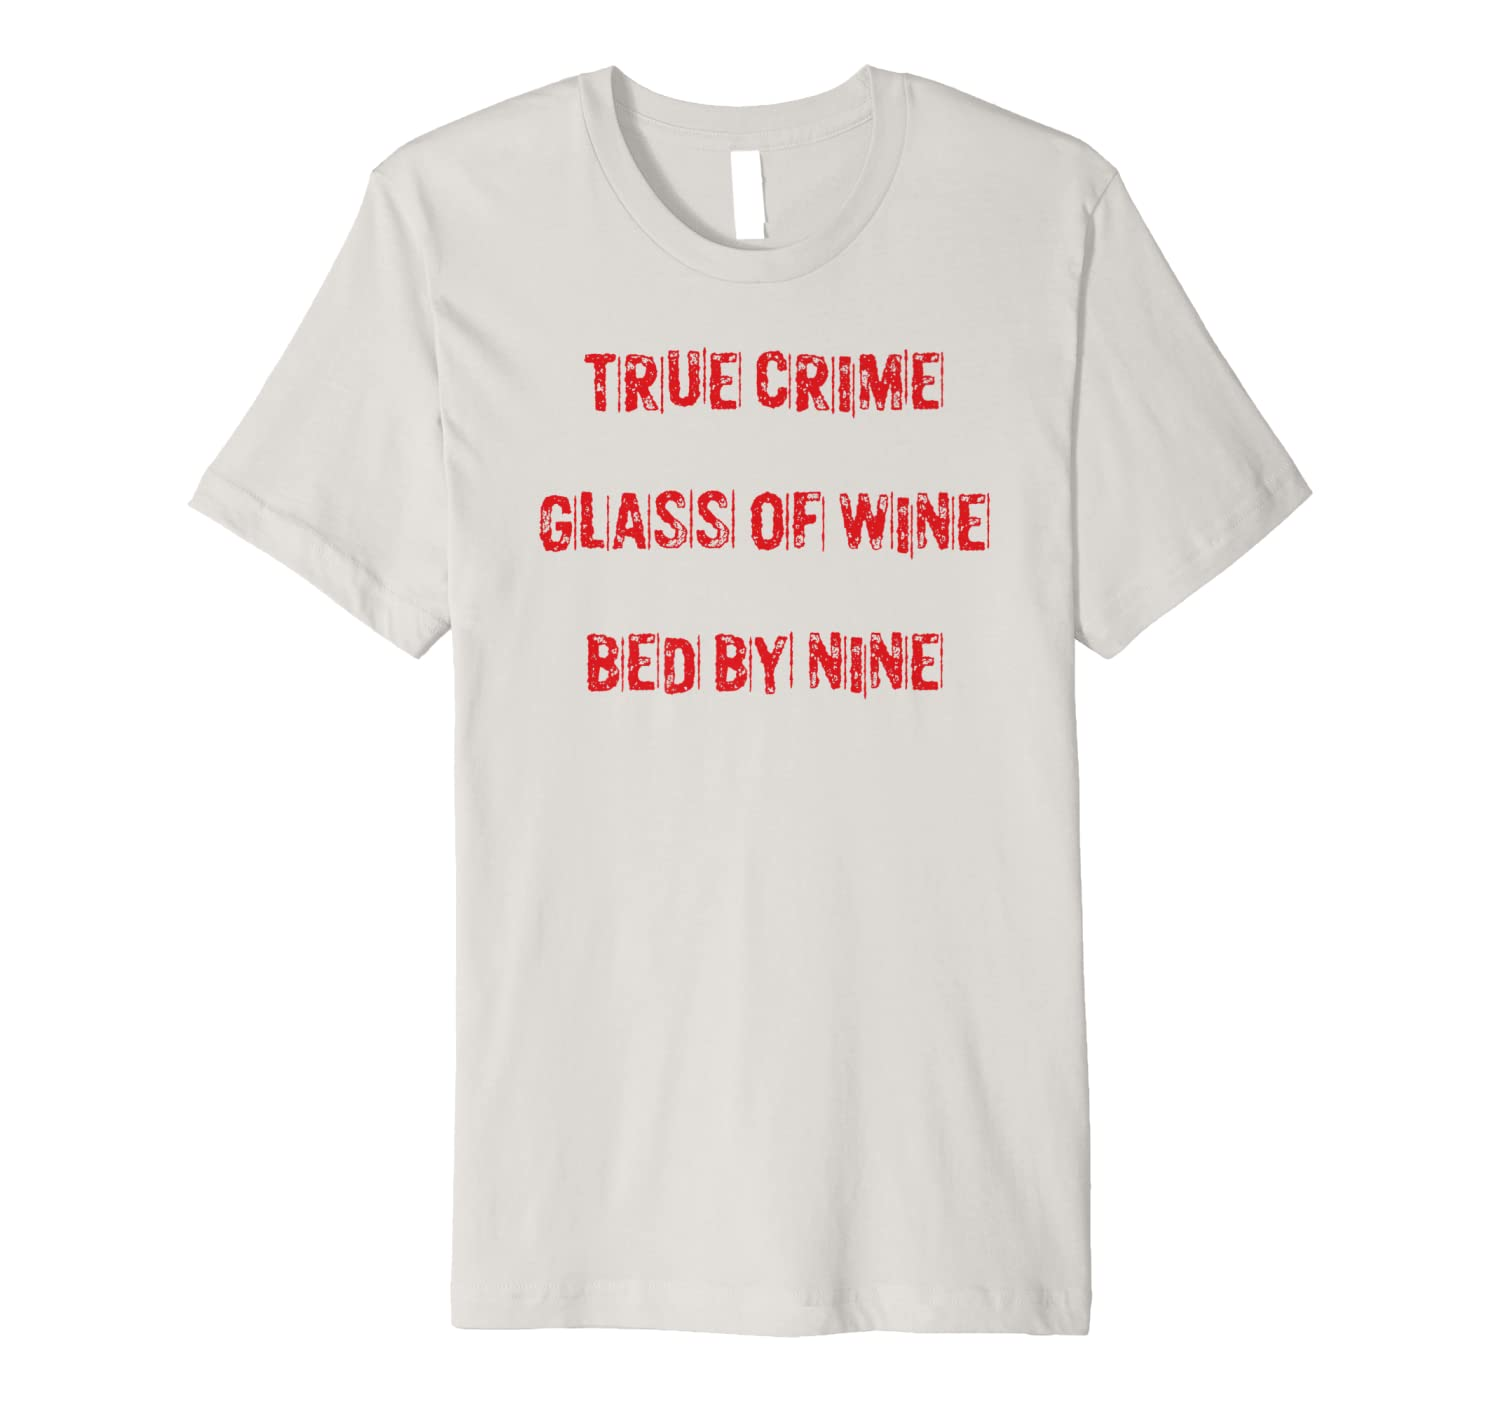 True Crime Glass Of Wine In Bed By Nine Shirt True Crime Tee Premium T-Shirt image